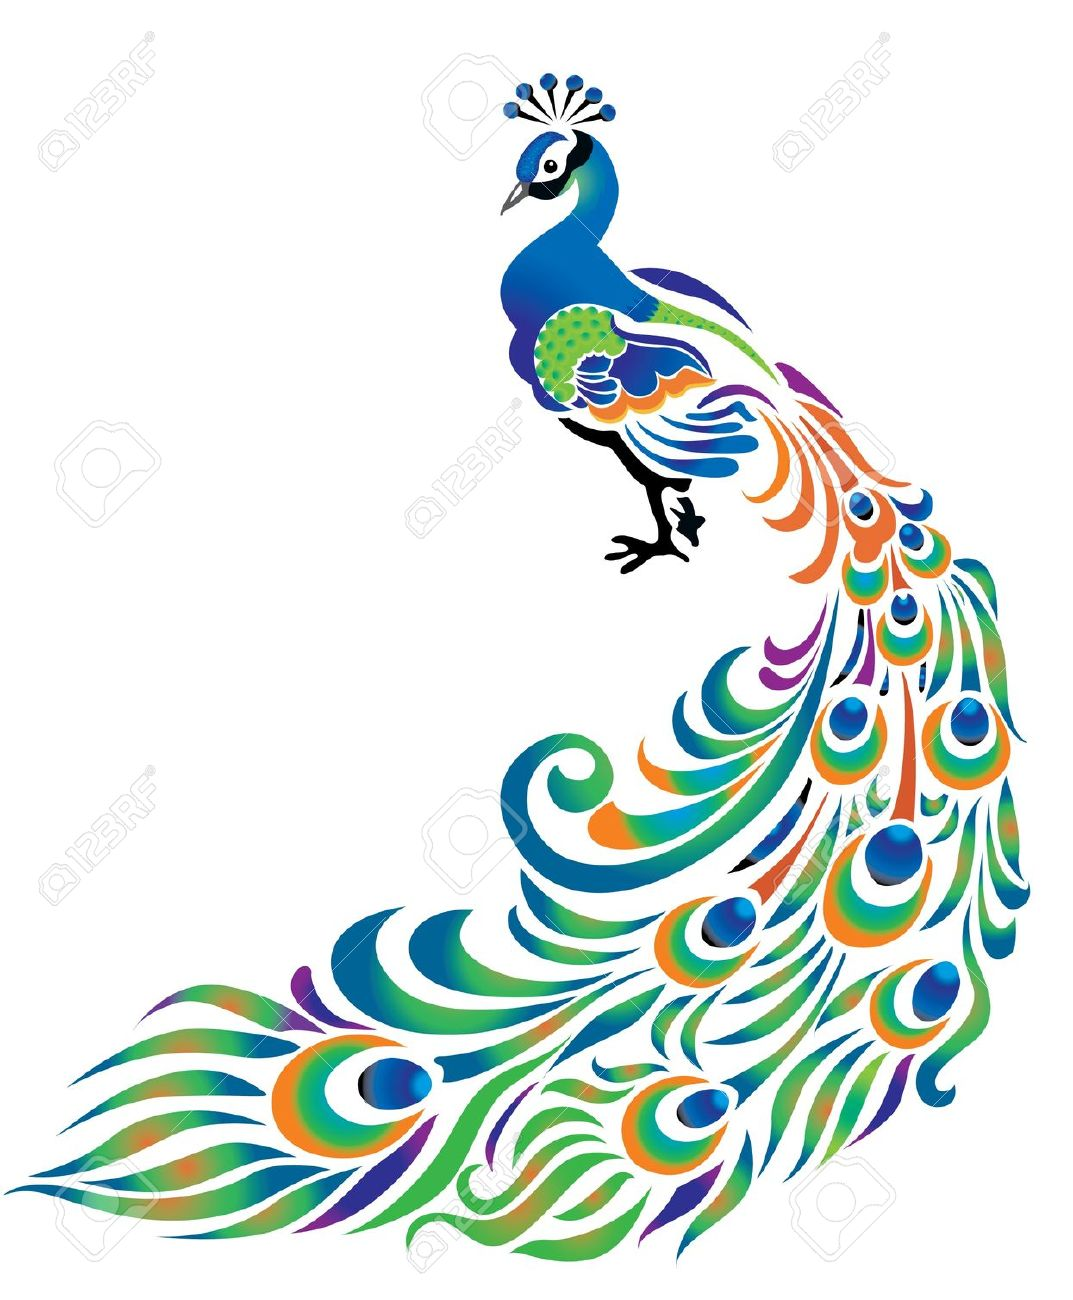 Free peacock clipart vector royalty free library Best Peacock Clipart #12891 - Clipartion.com vector royalty free library